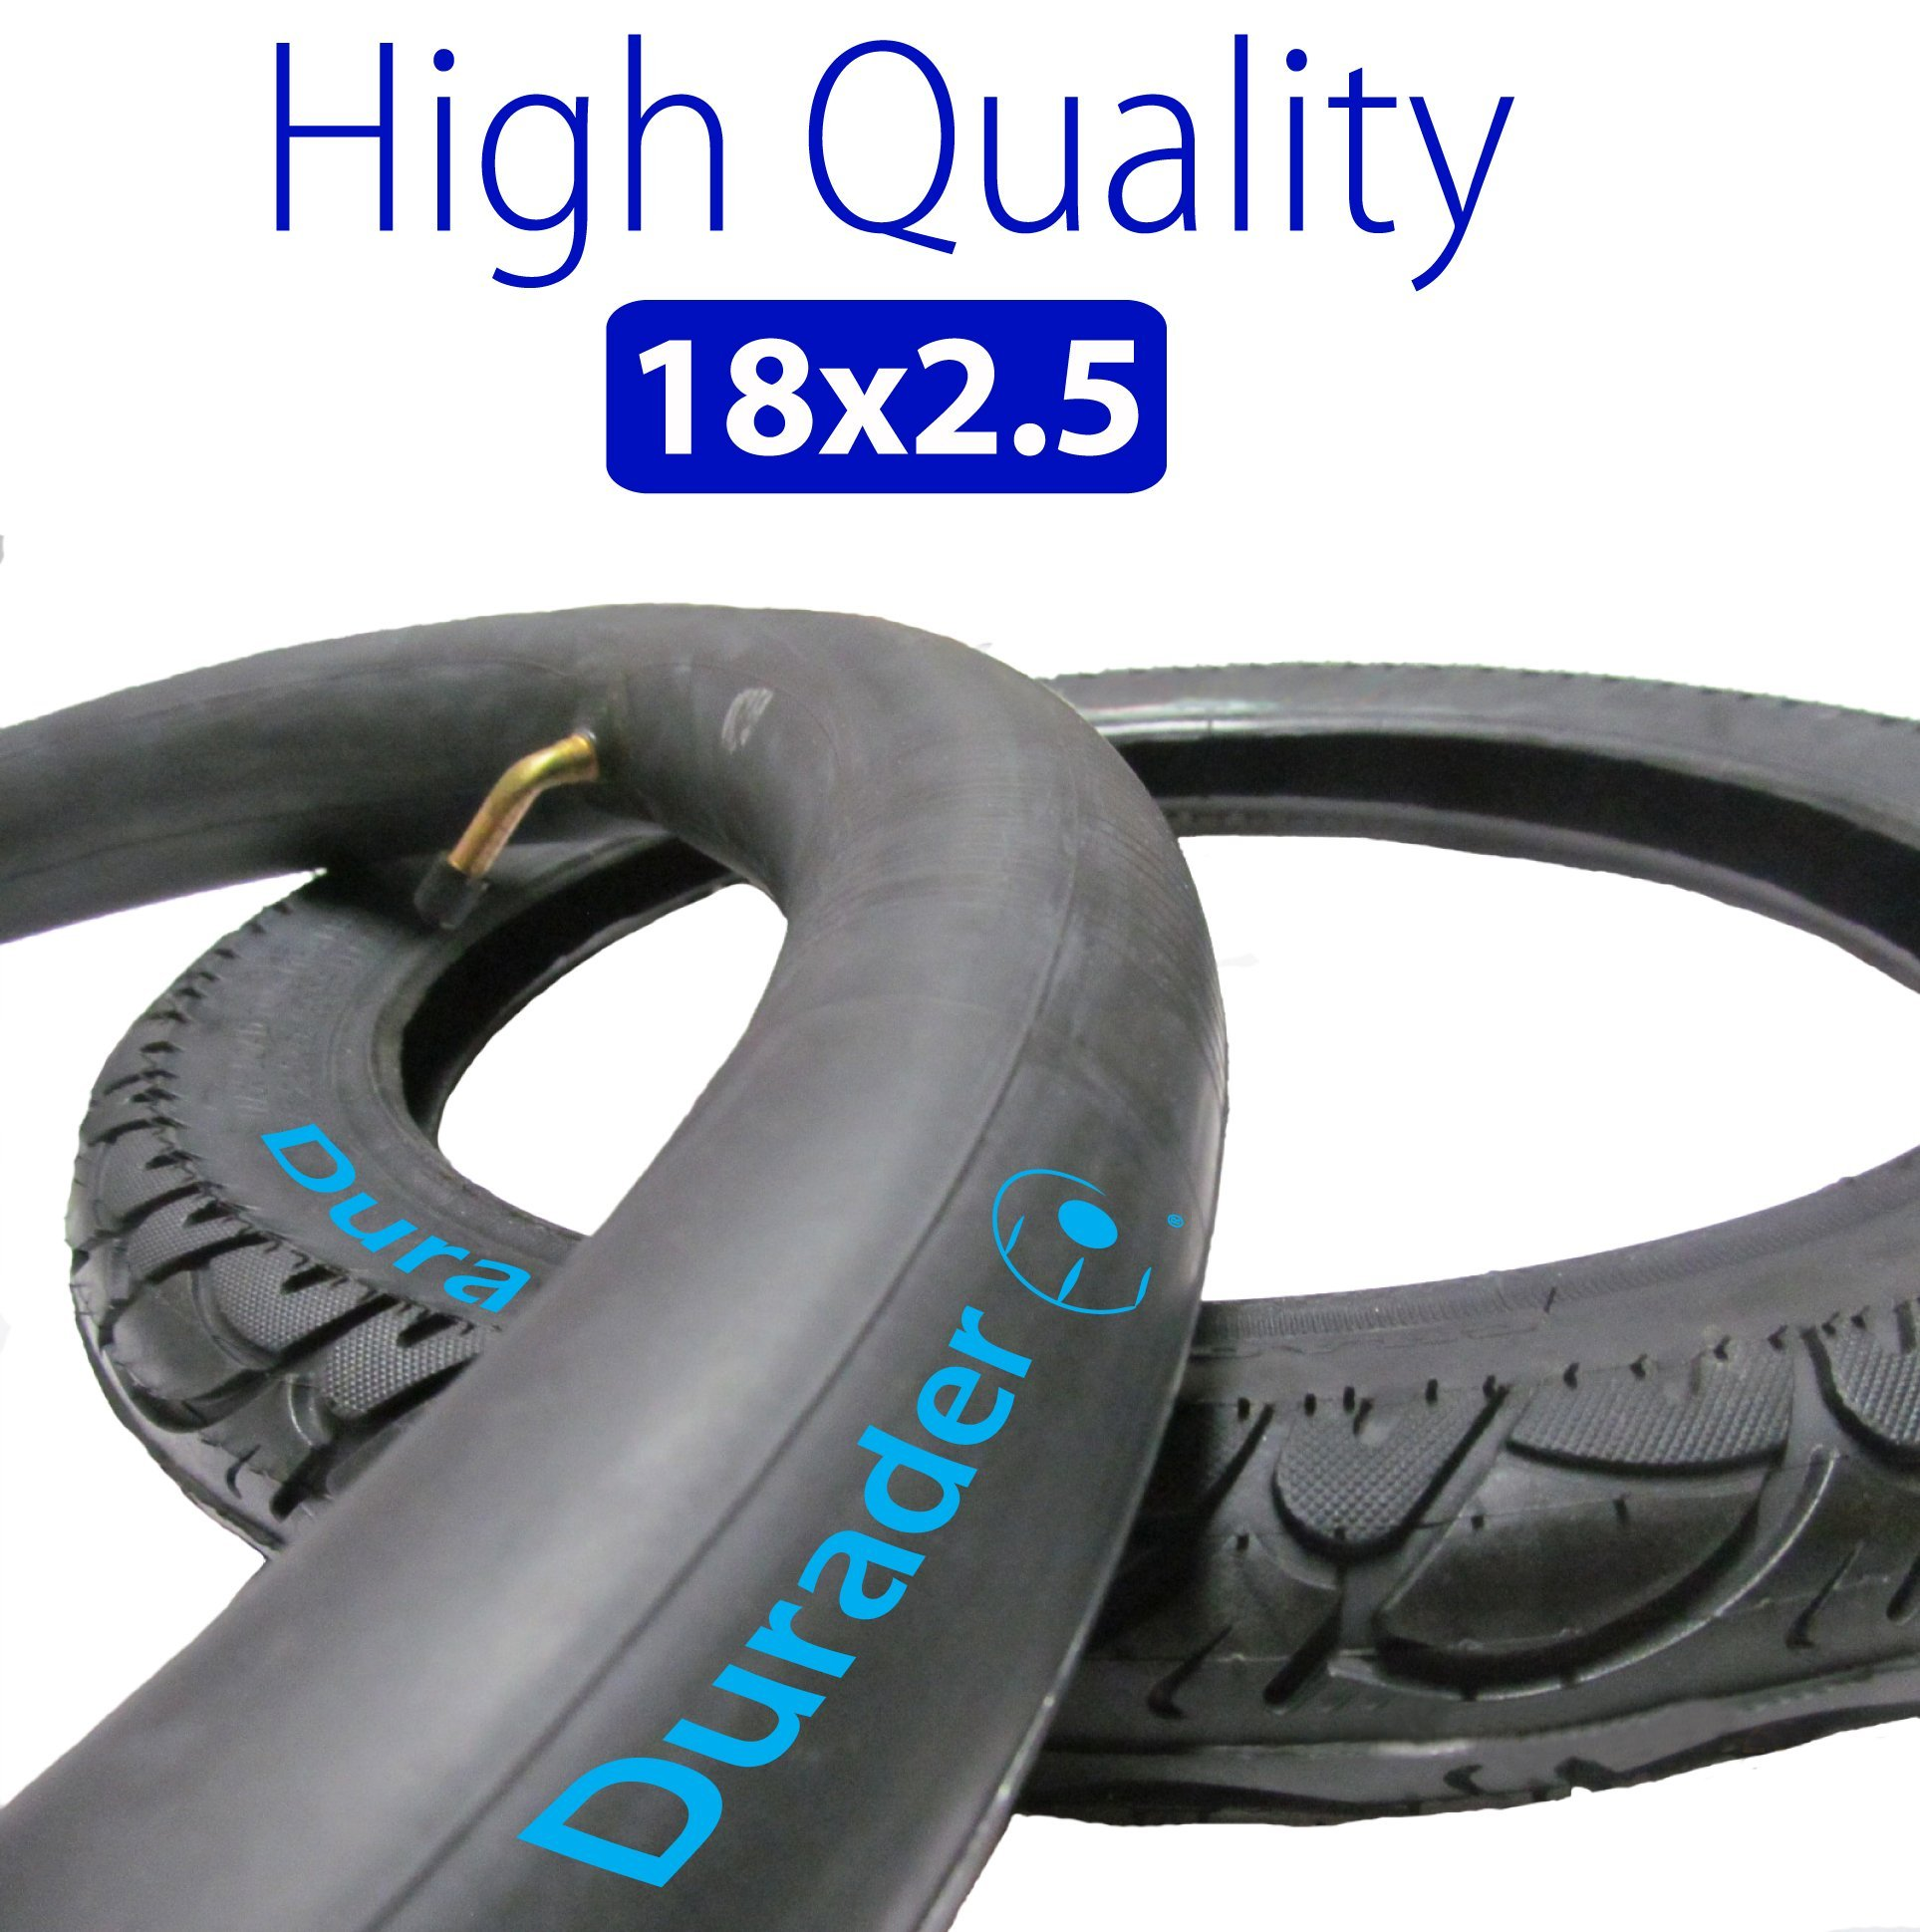 18x2.50 / 64 - 355 Inner Tube & Tire for Electric Bike by Lineament